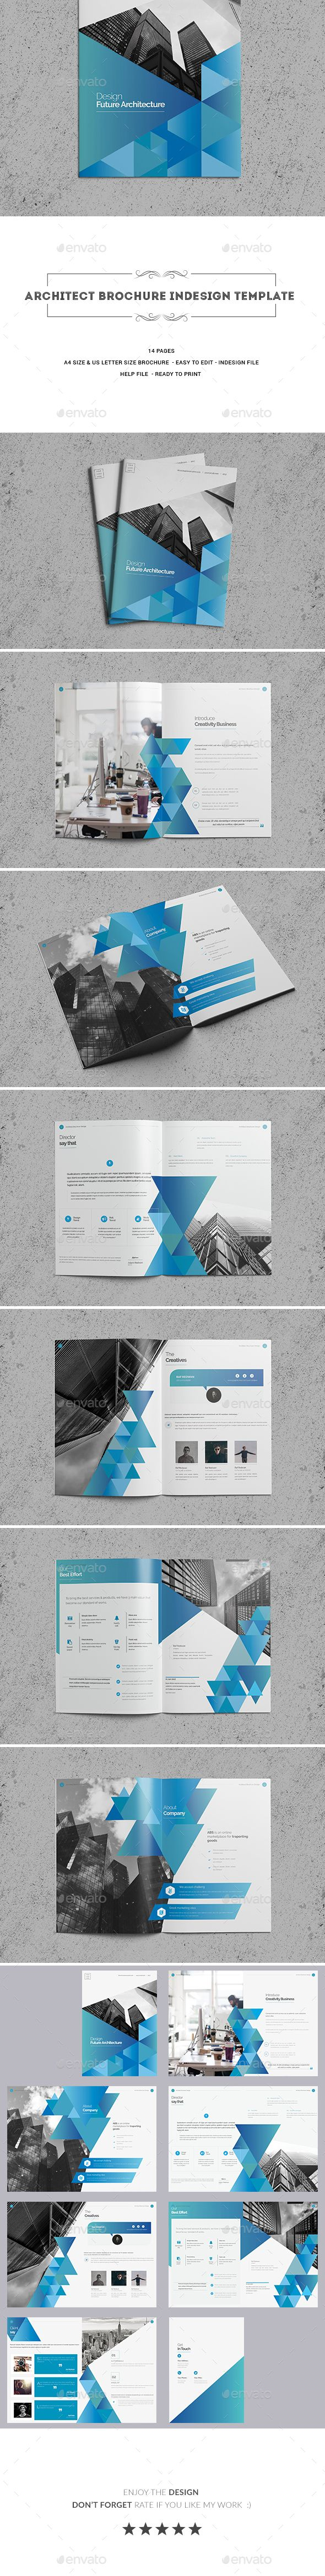 Architect Brochure Template InDesign INDD - 14 Pages, A4 & US Letter ...